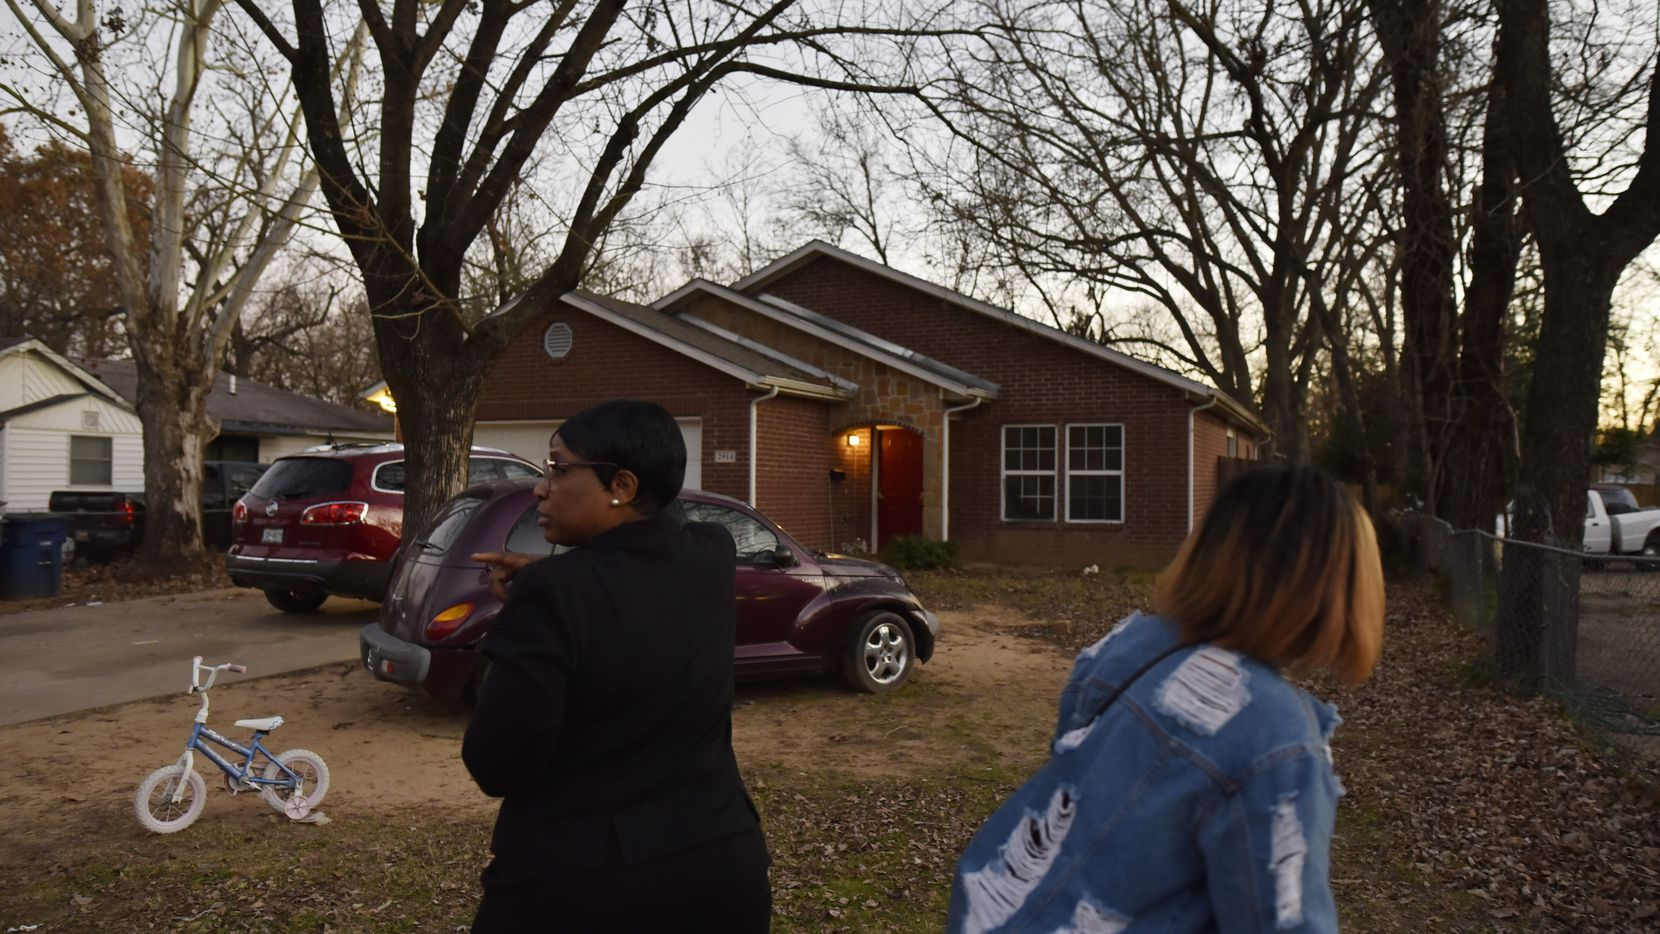 Ella Mae Beasley, 57, left, and her niece walked by the home where 1-year-old Rory Norman was shot and killed early Sunday morning on Valentine Street in South Dallas, Jan. 5, 2020.